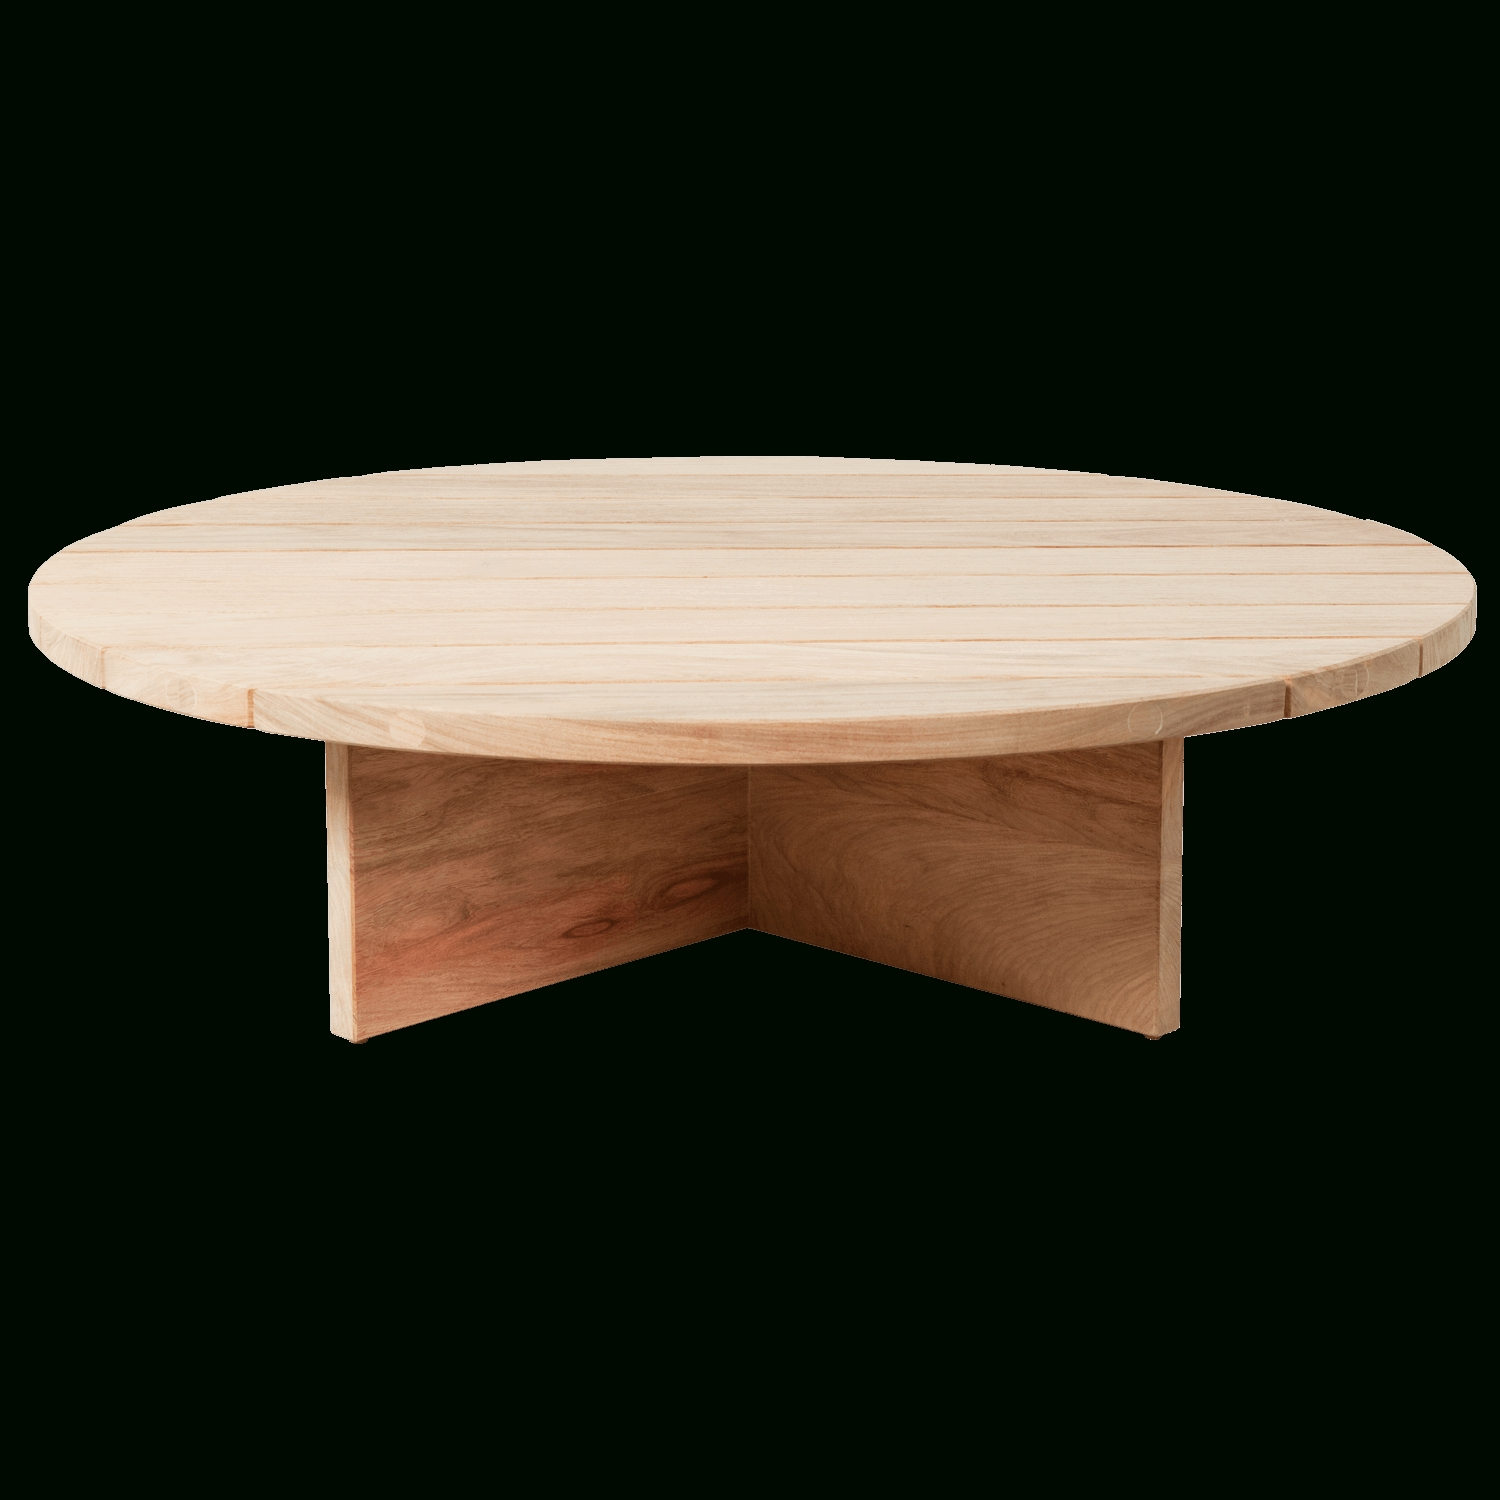 Chunky Coffee Table Round – Robert Plumb Store Intended For Recent Chunky Coffee Tables (View 3 of 20)